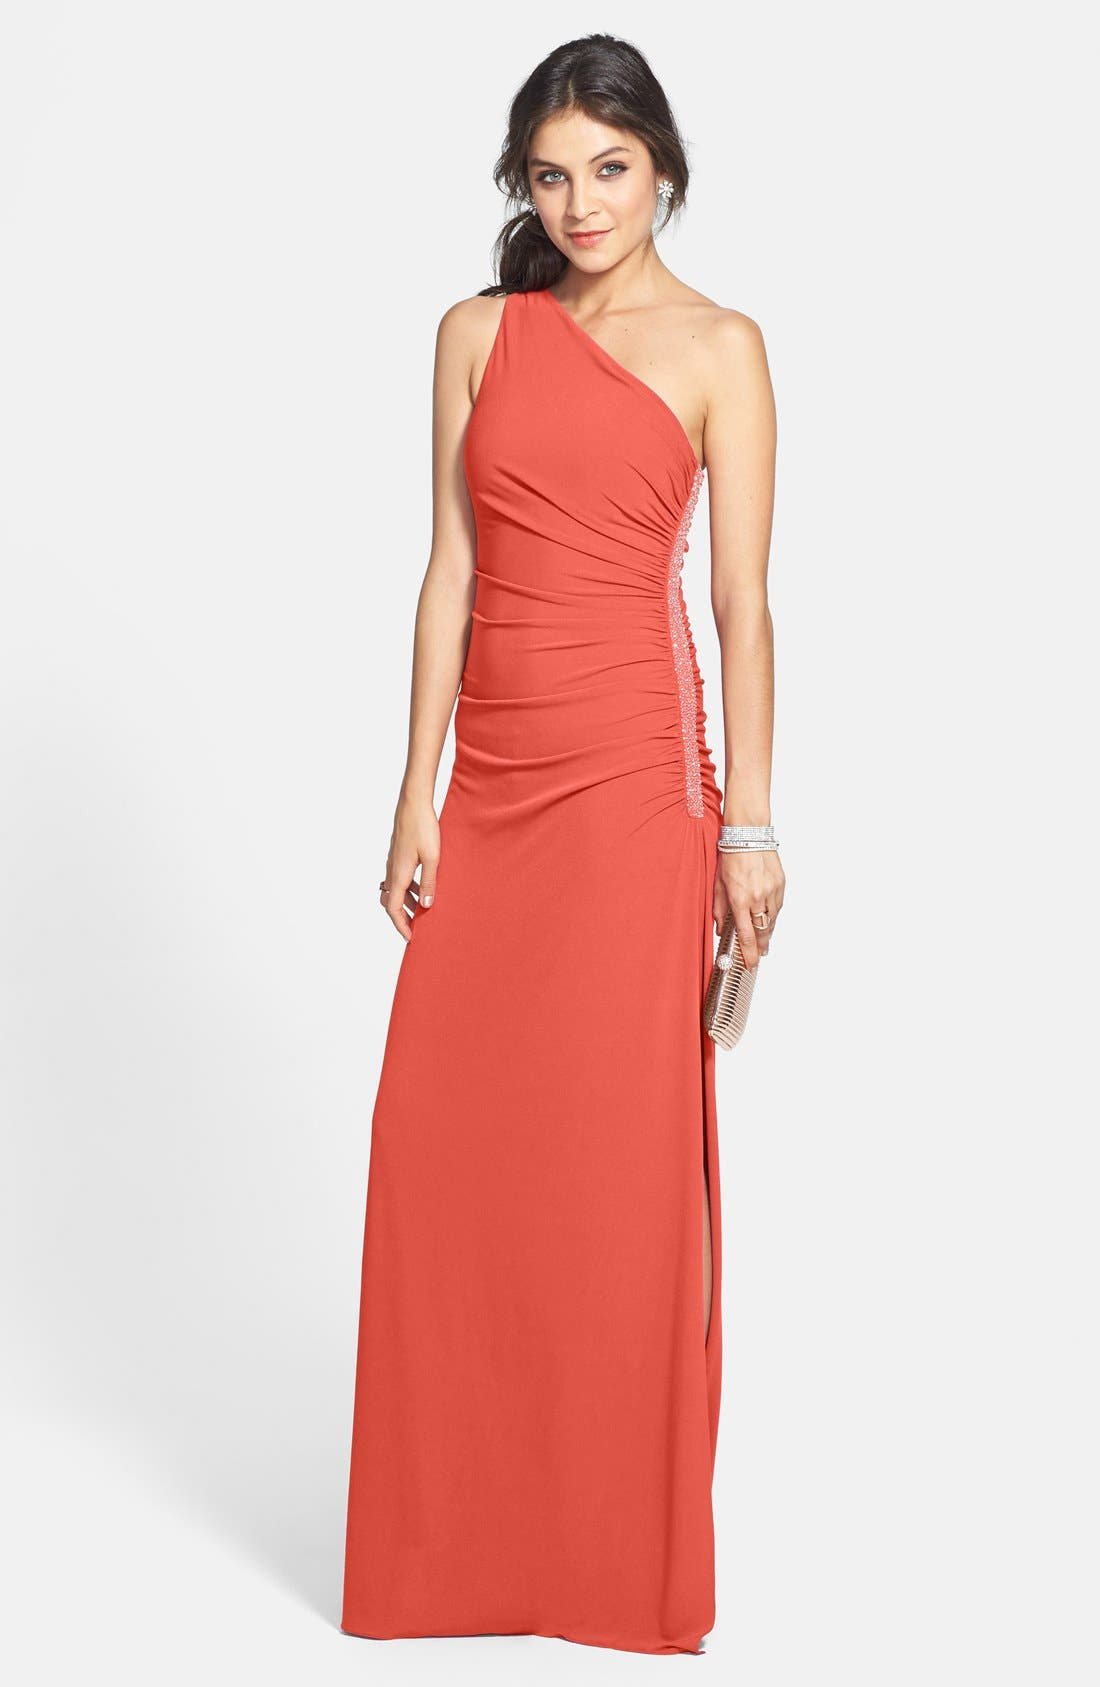 Alternate Image 1 Selected - Laundry by Shelli Segal Beaded Panel One-Shoulder Jersey Gown (Regular & Petite)